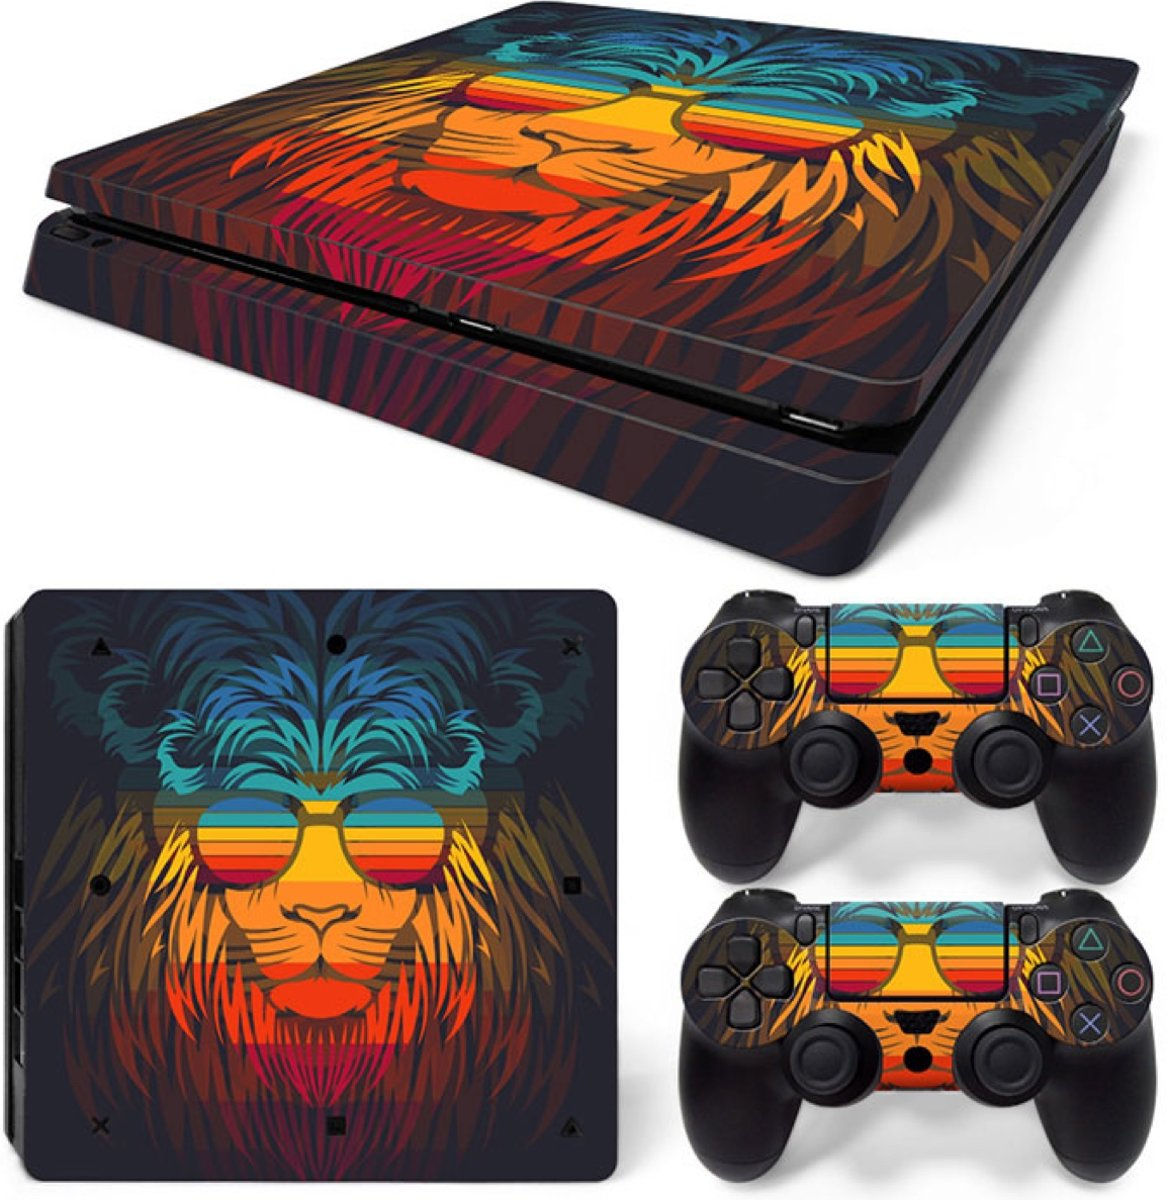 Retro Leeuw - PS4 Slim Console Skins PlayStation Stickers